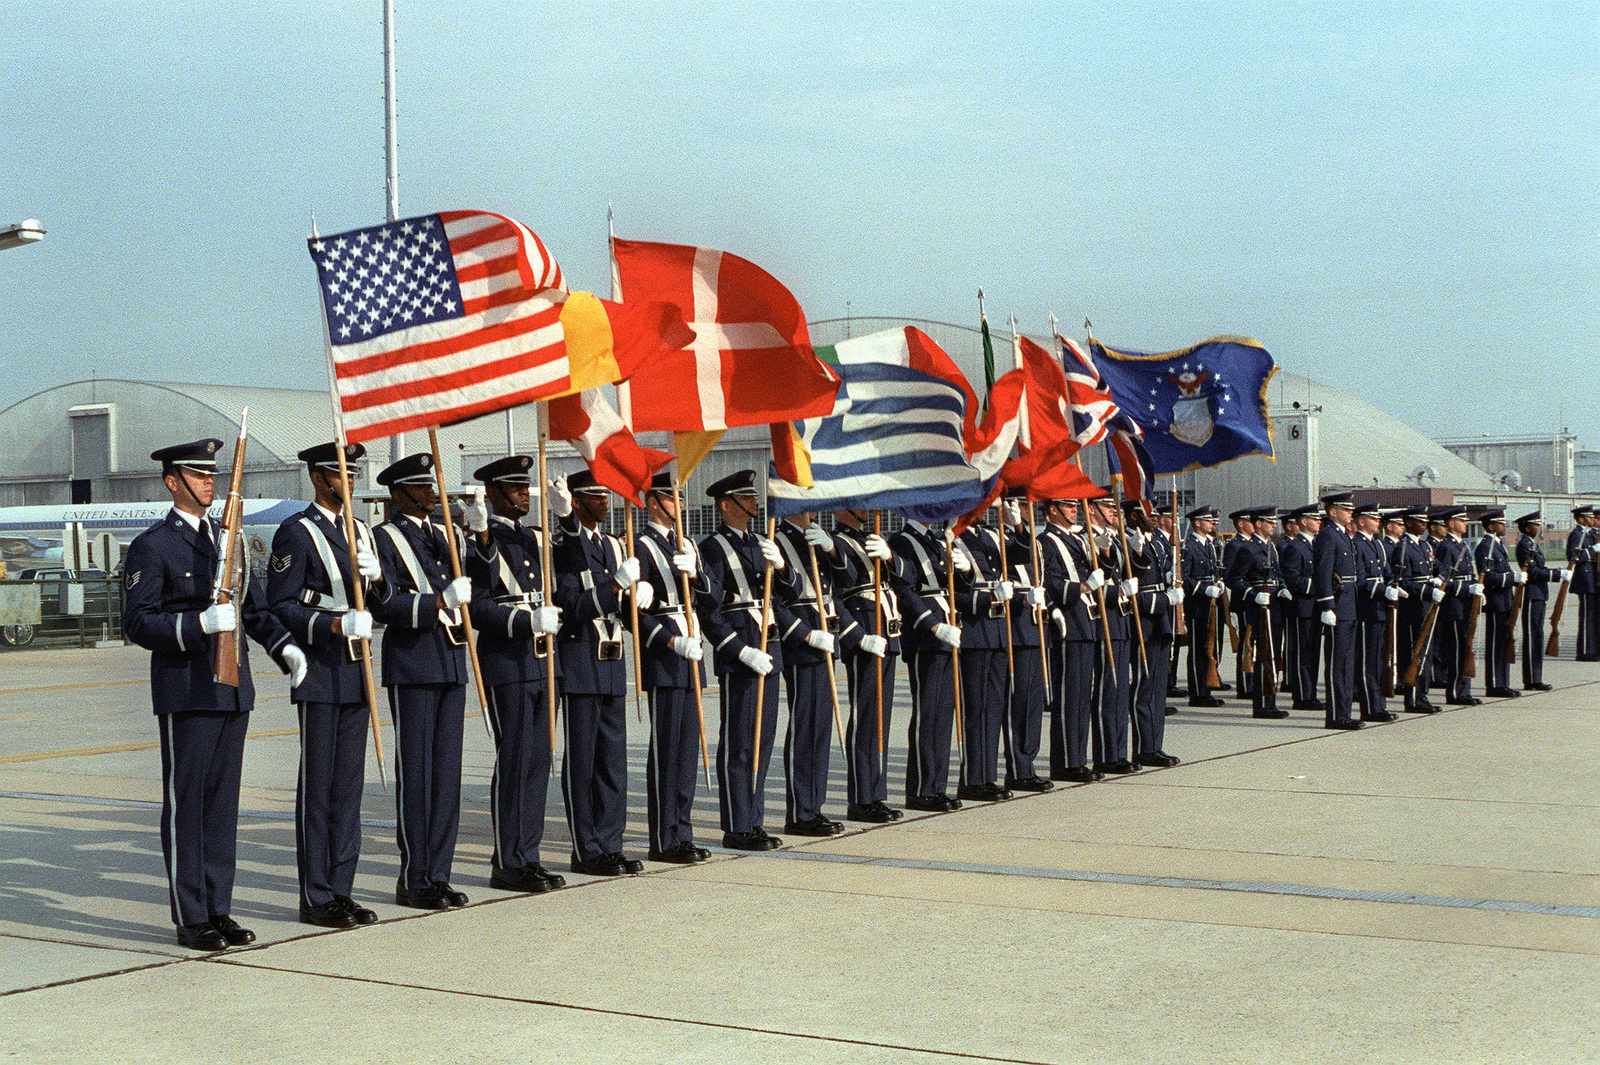 An honor guard, holding flags of NATO countries, perform at a